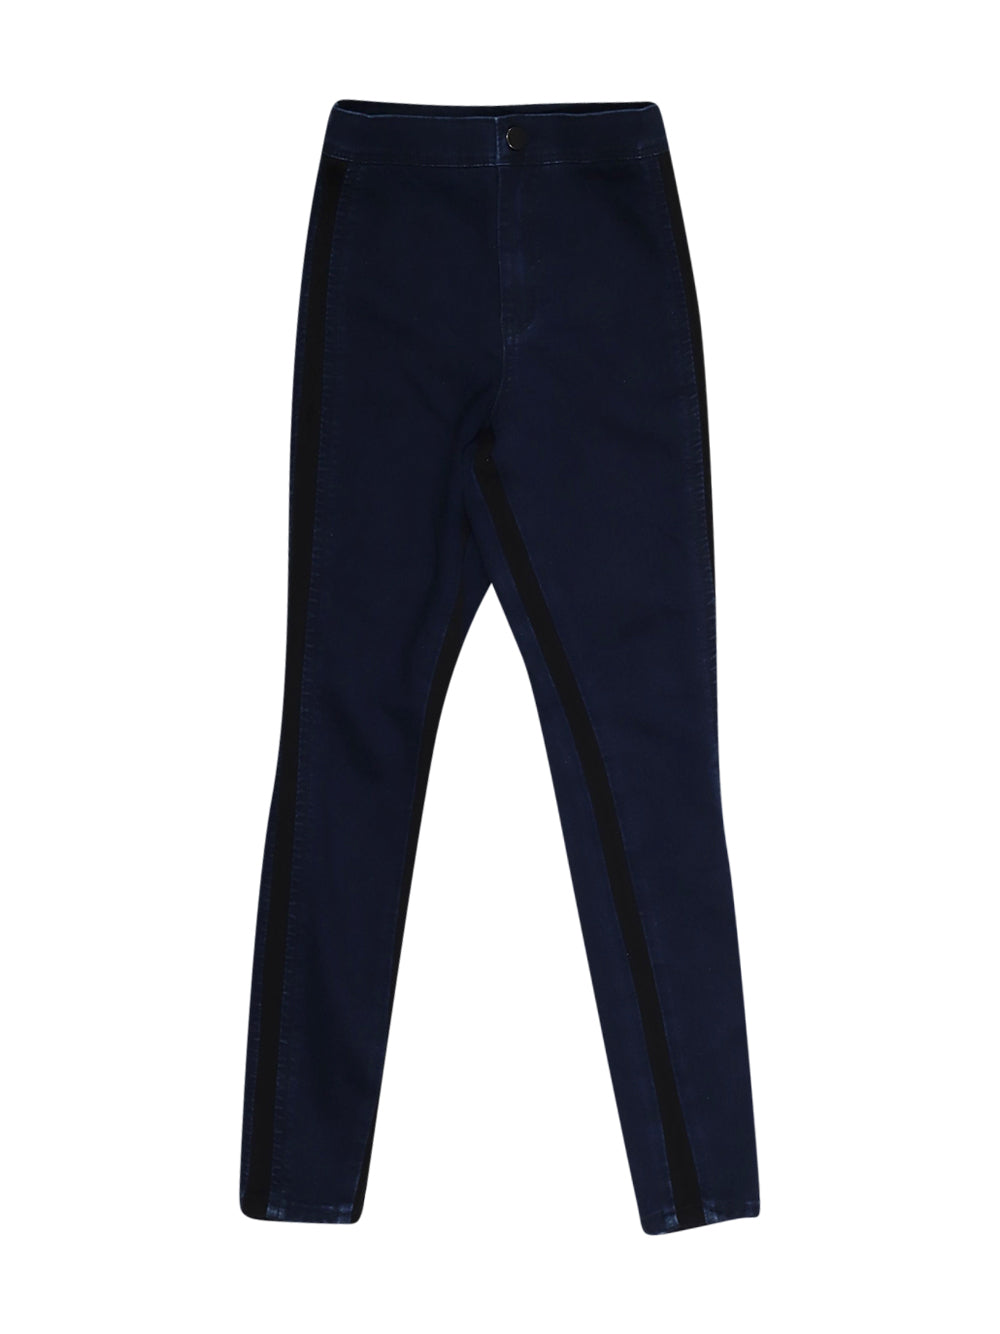 Front photo of Preloved Asos Blue Woman's trousers - size 6/XS